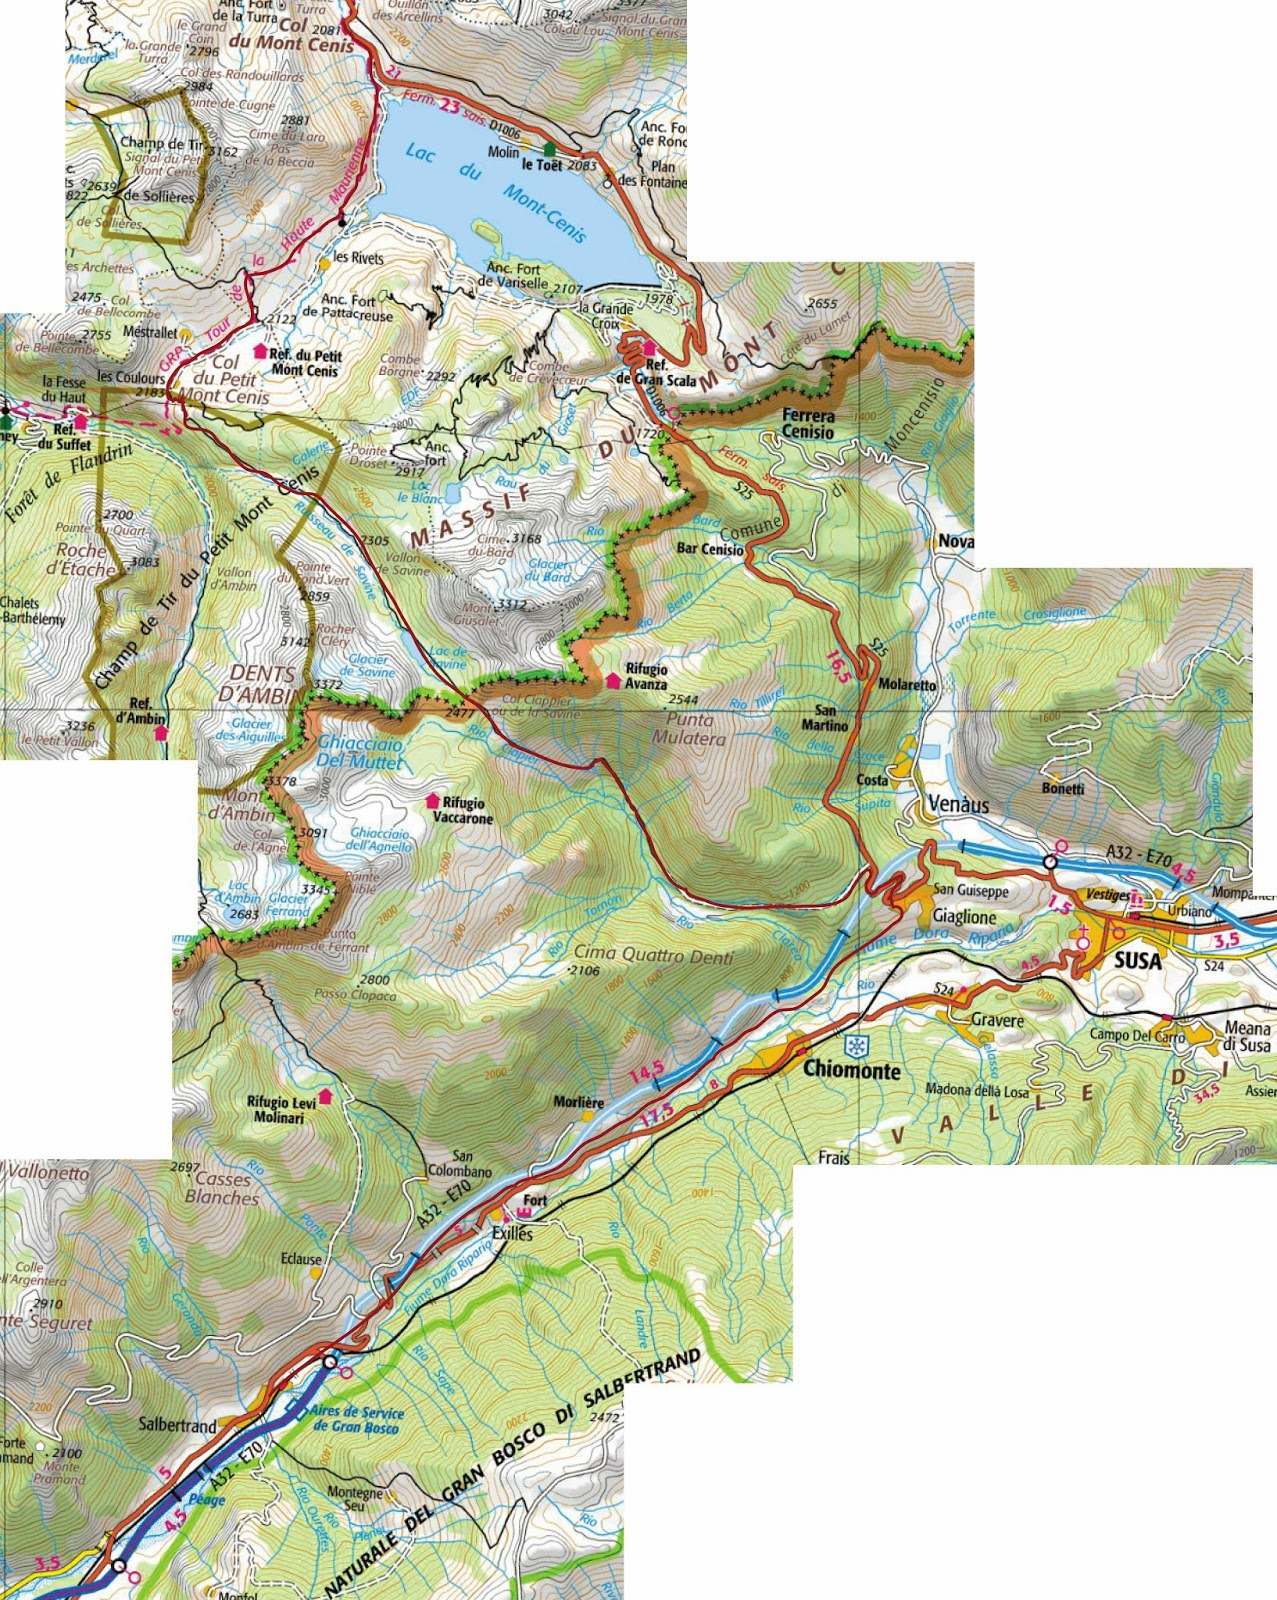 march from col du mont cenis to salbertran click on the map to get an expanded version the route is shown in red